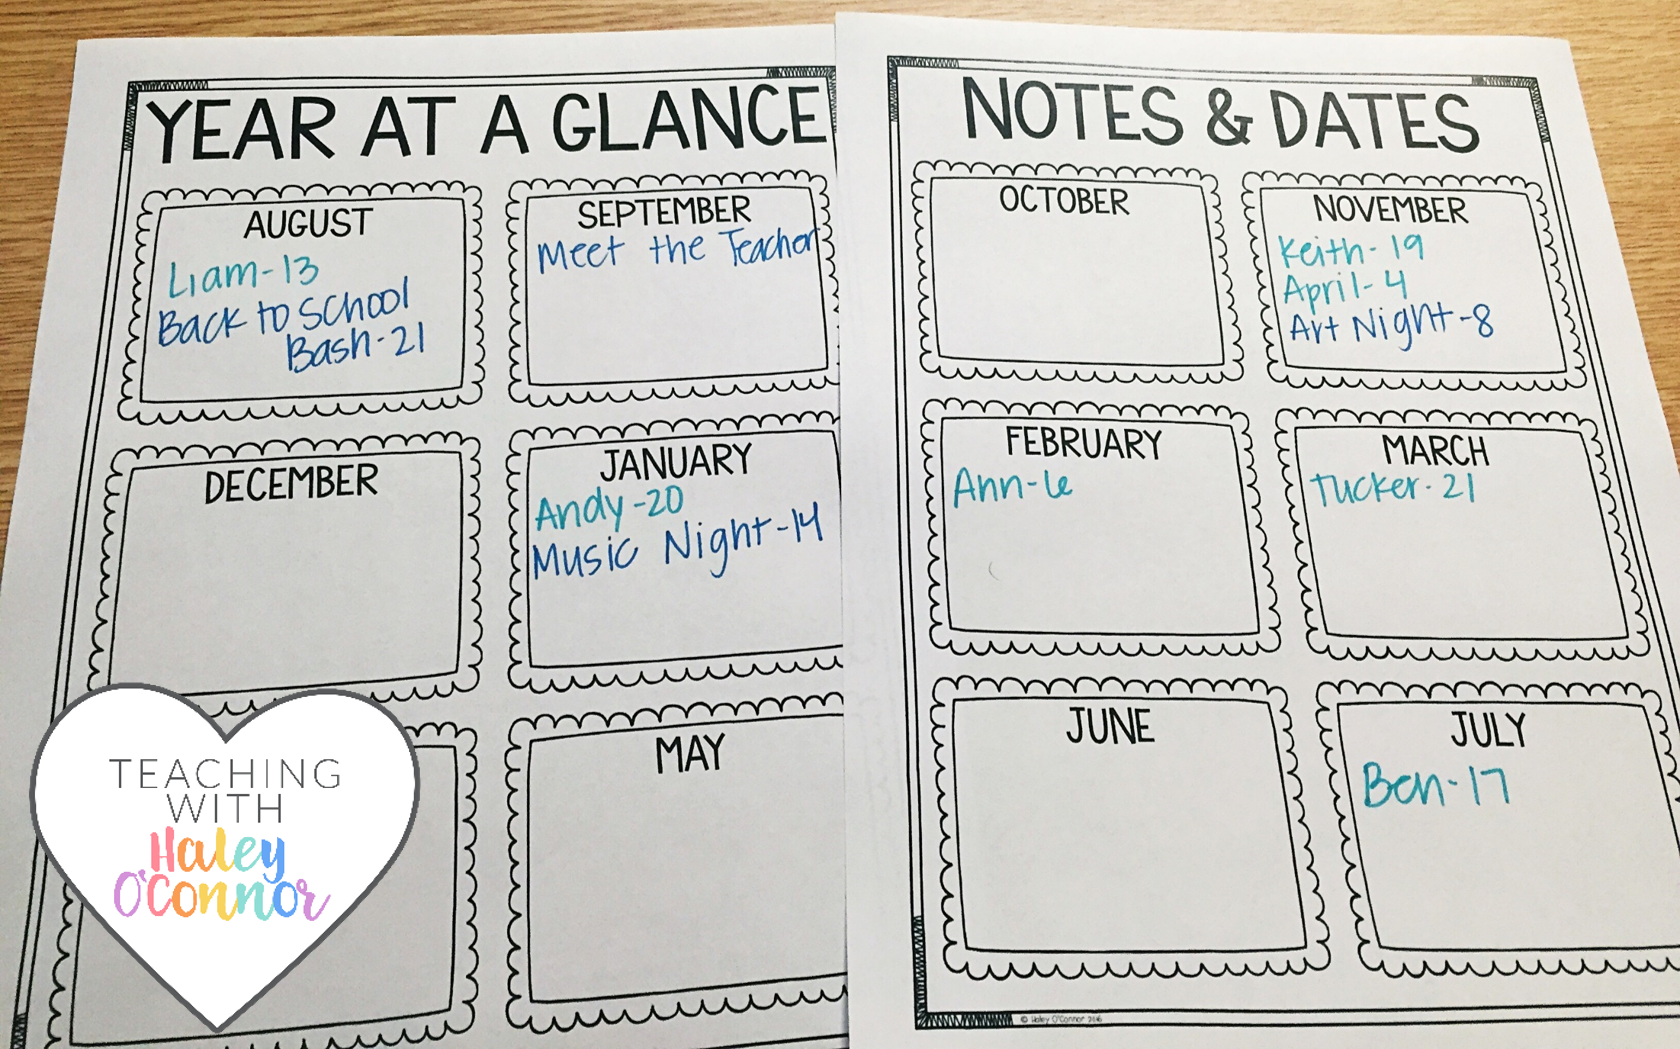 Year at a Glance Page for Teachers by Haley OConnor